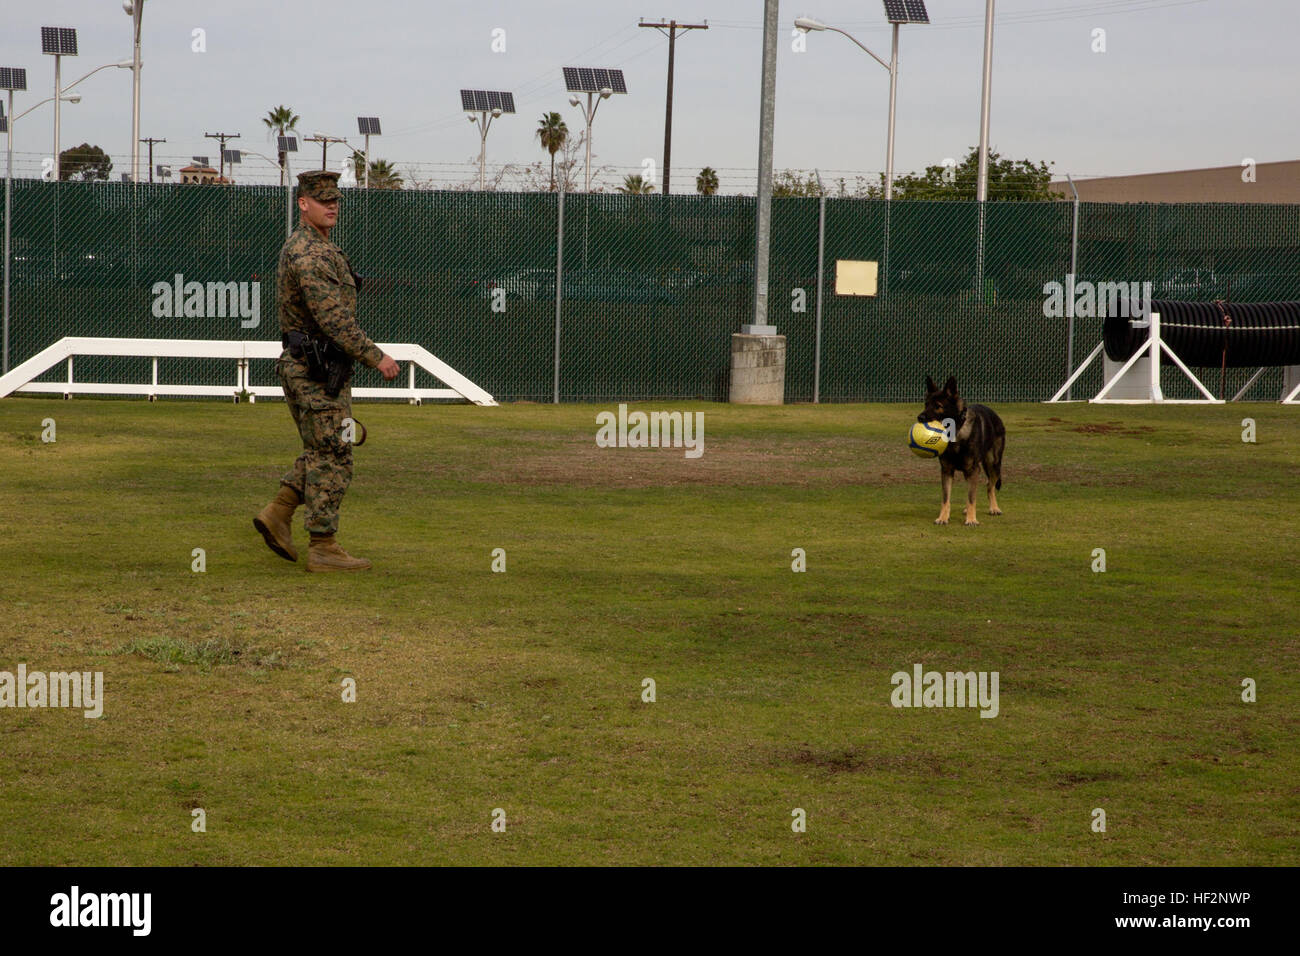 how to become a dog handler in the military